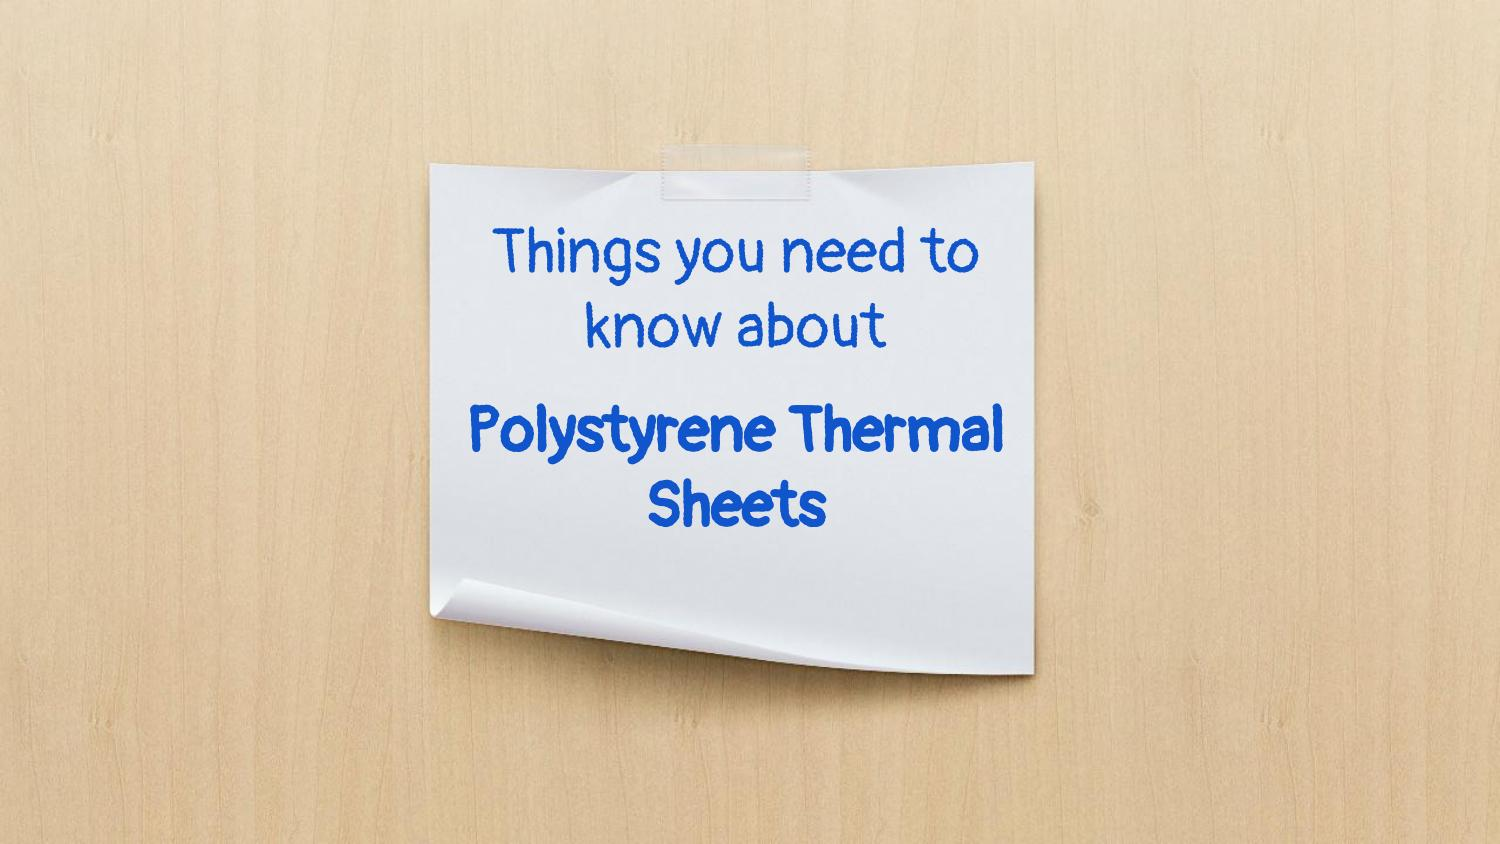 Expanded Polystyrene Thermal Sheets offered by Galaxy